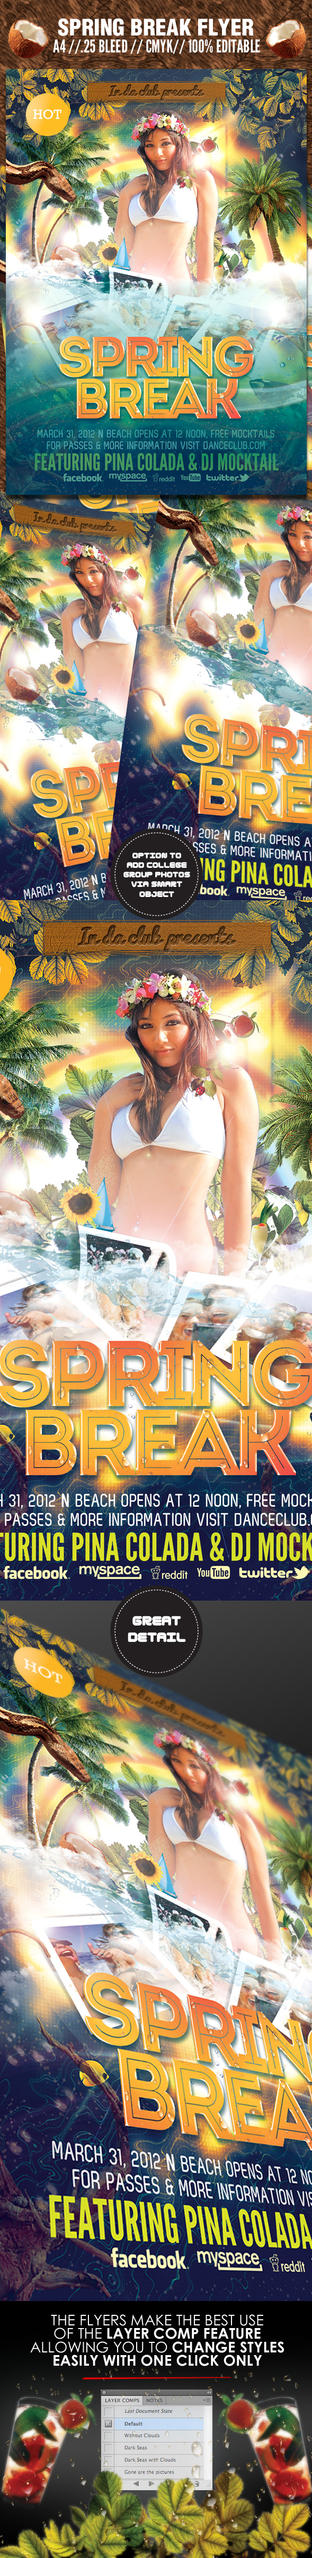 Spring Break Flyer by ShermanJackson